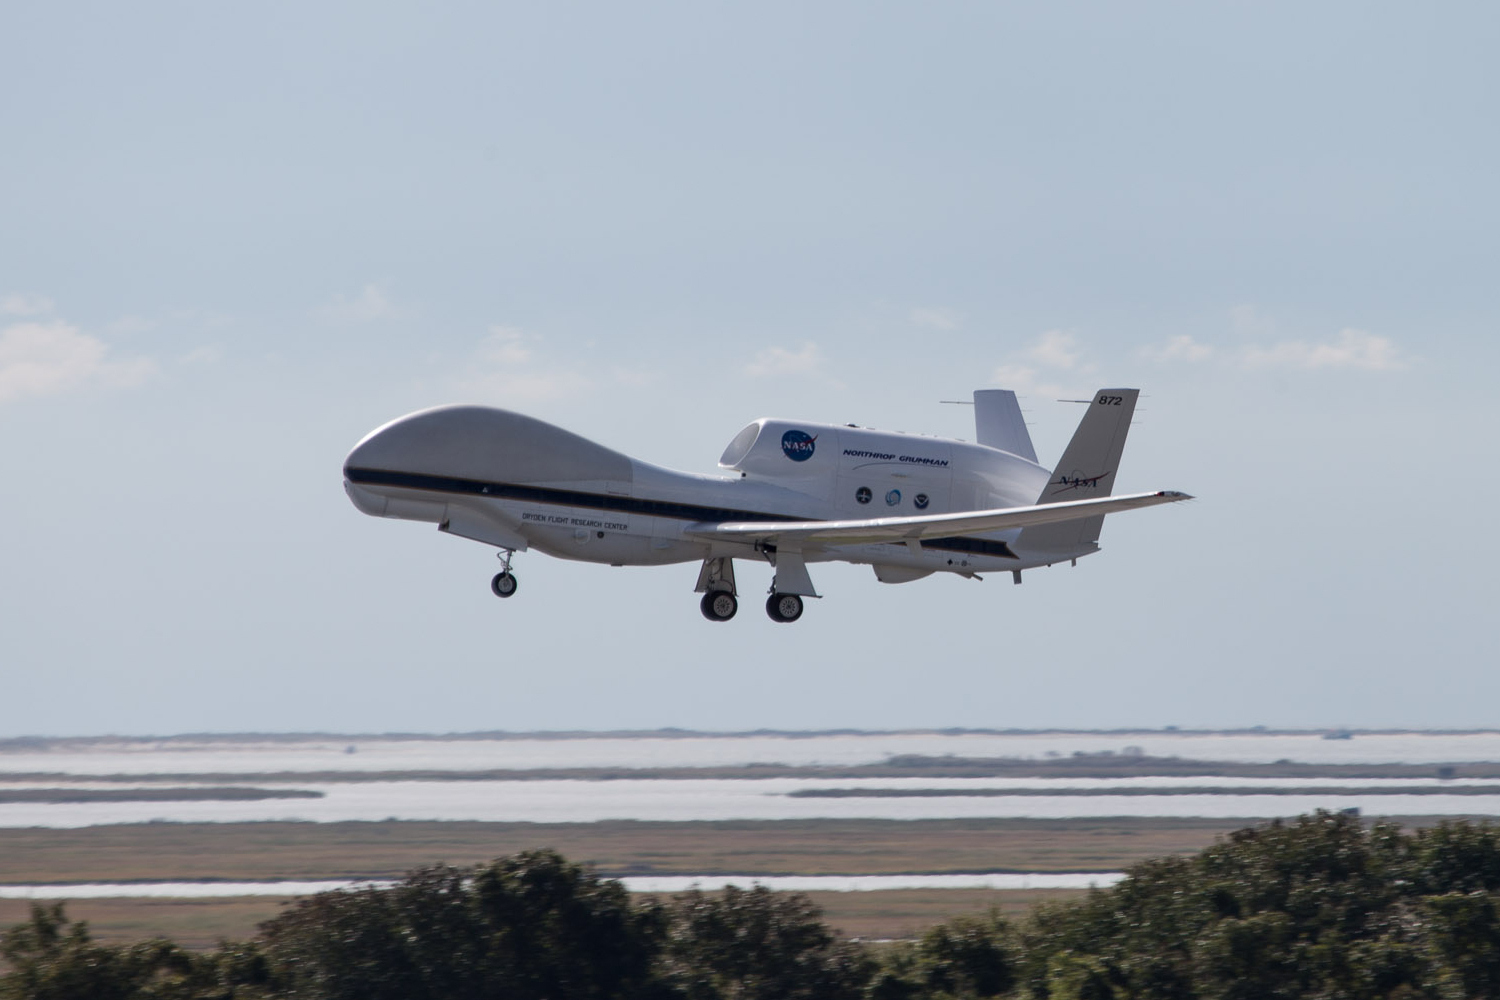 NASA Global Hawk Internal - Pics about space